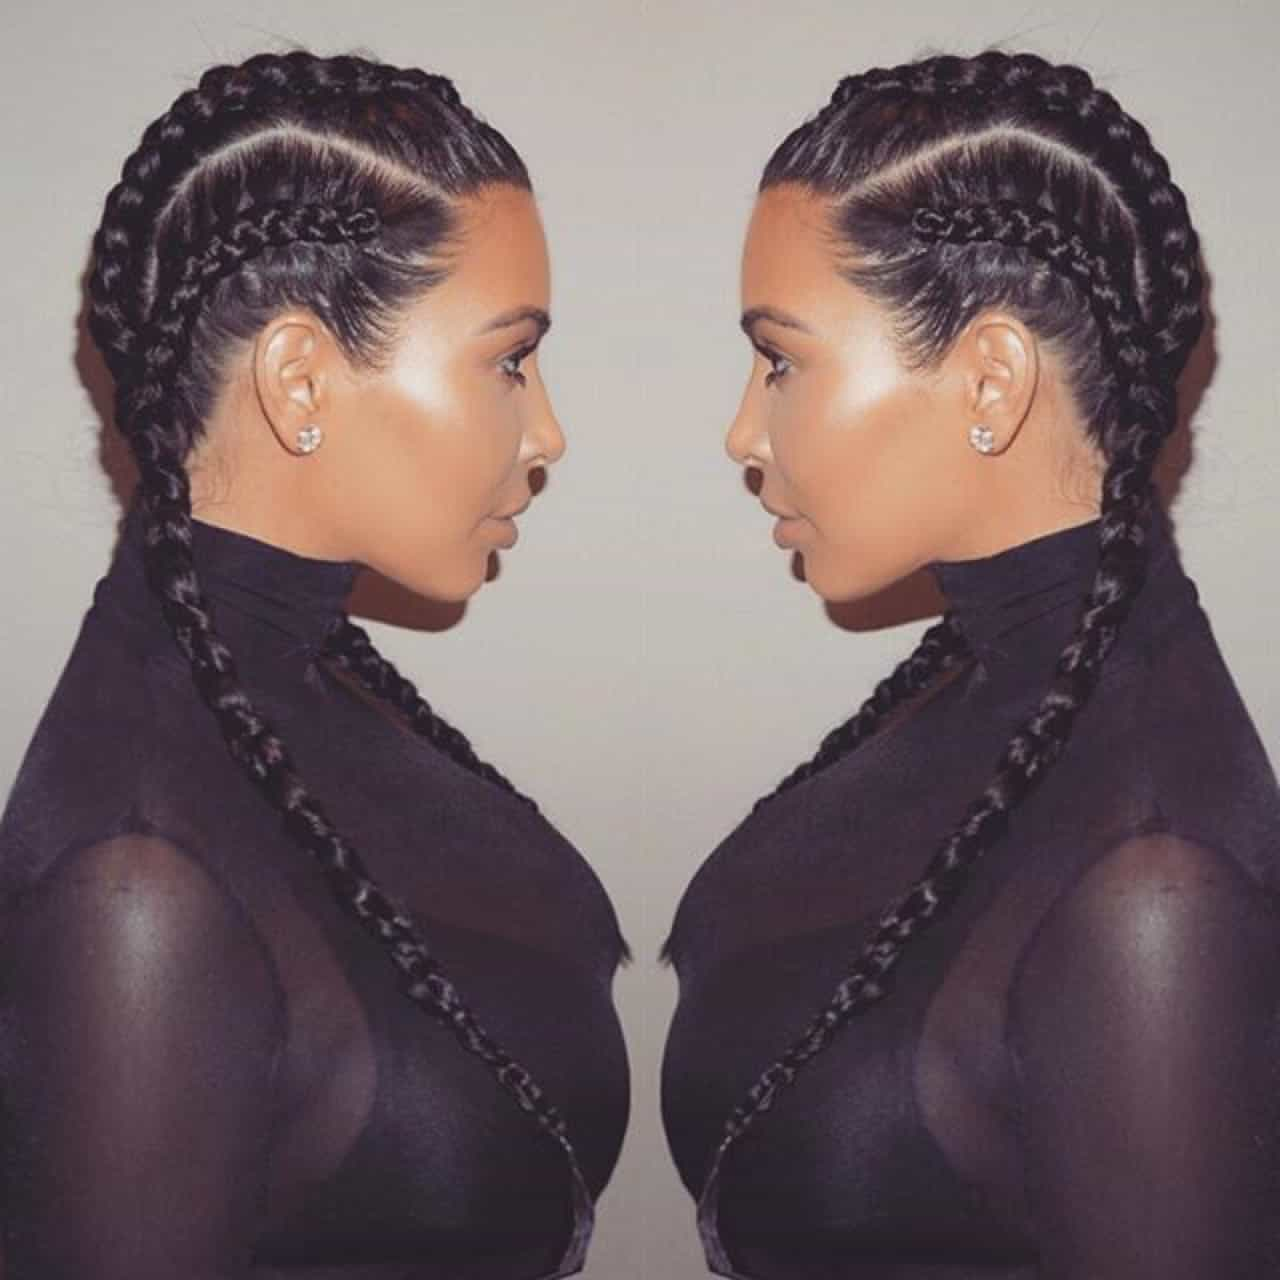 boxer-braids-hairstyle-trend-2016-11